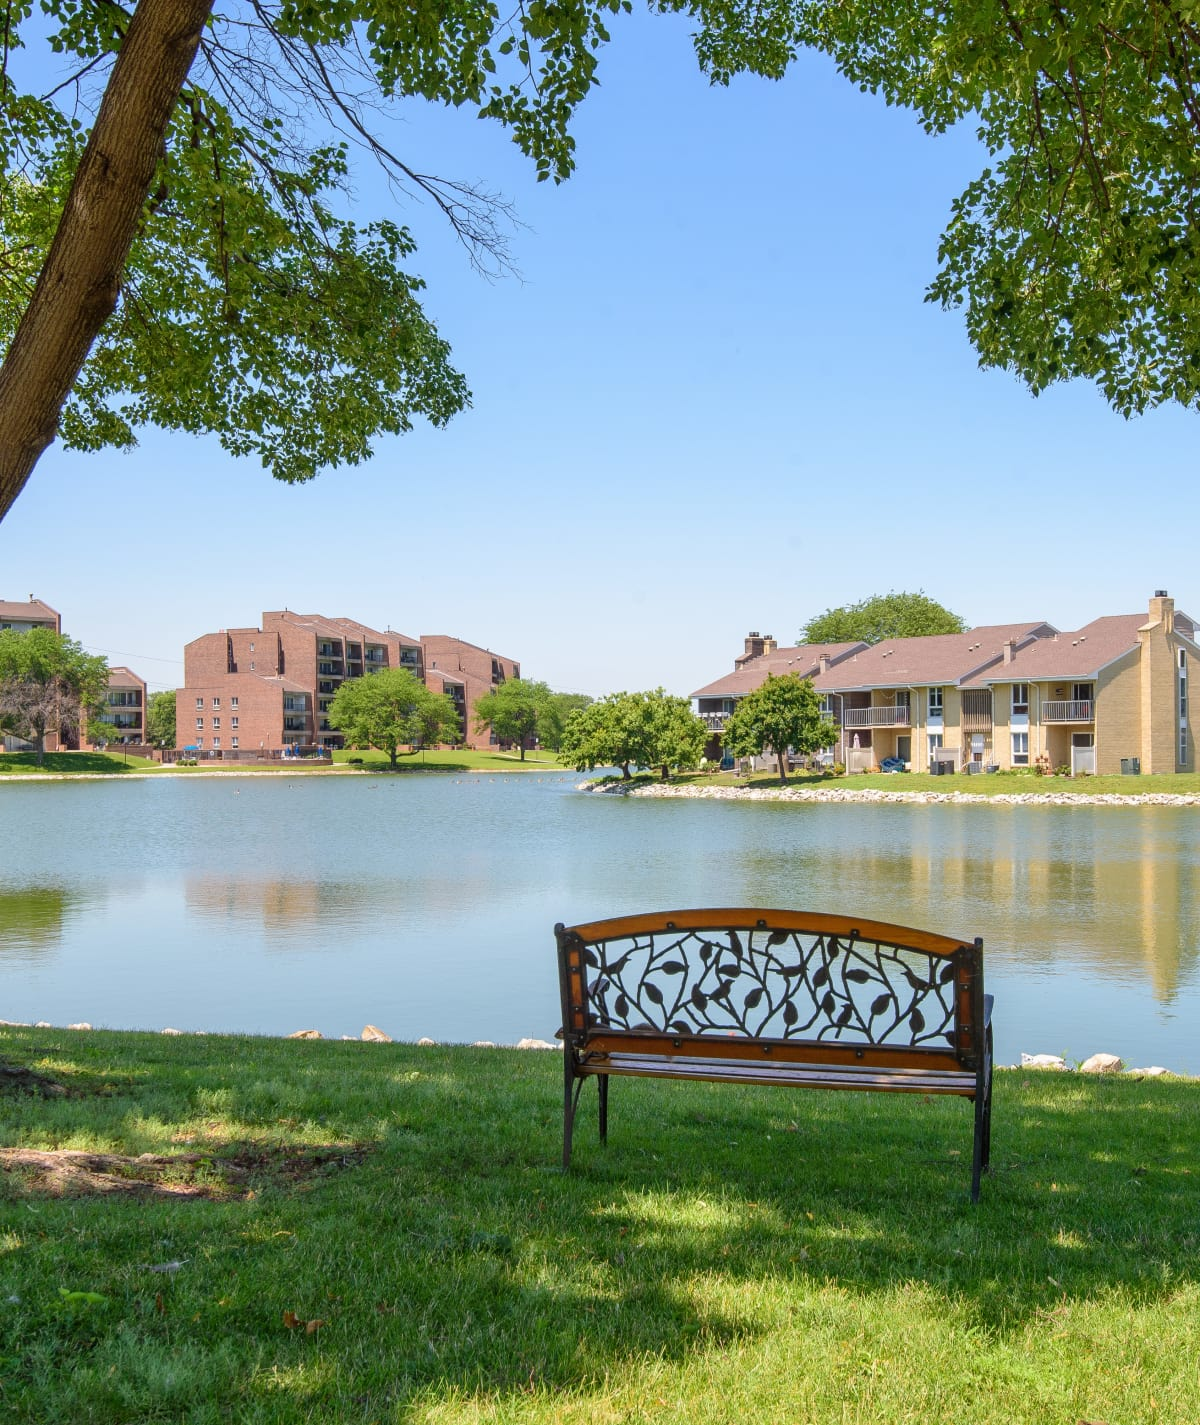 Regency Lakeside Apartment Homes sits on the shore of Lake Regency in Omaha, NE